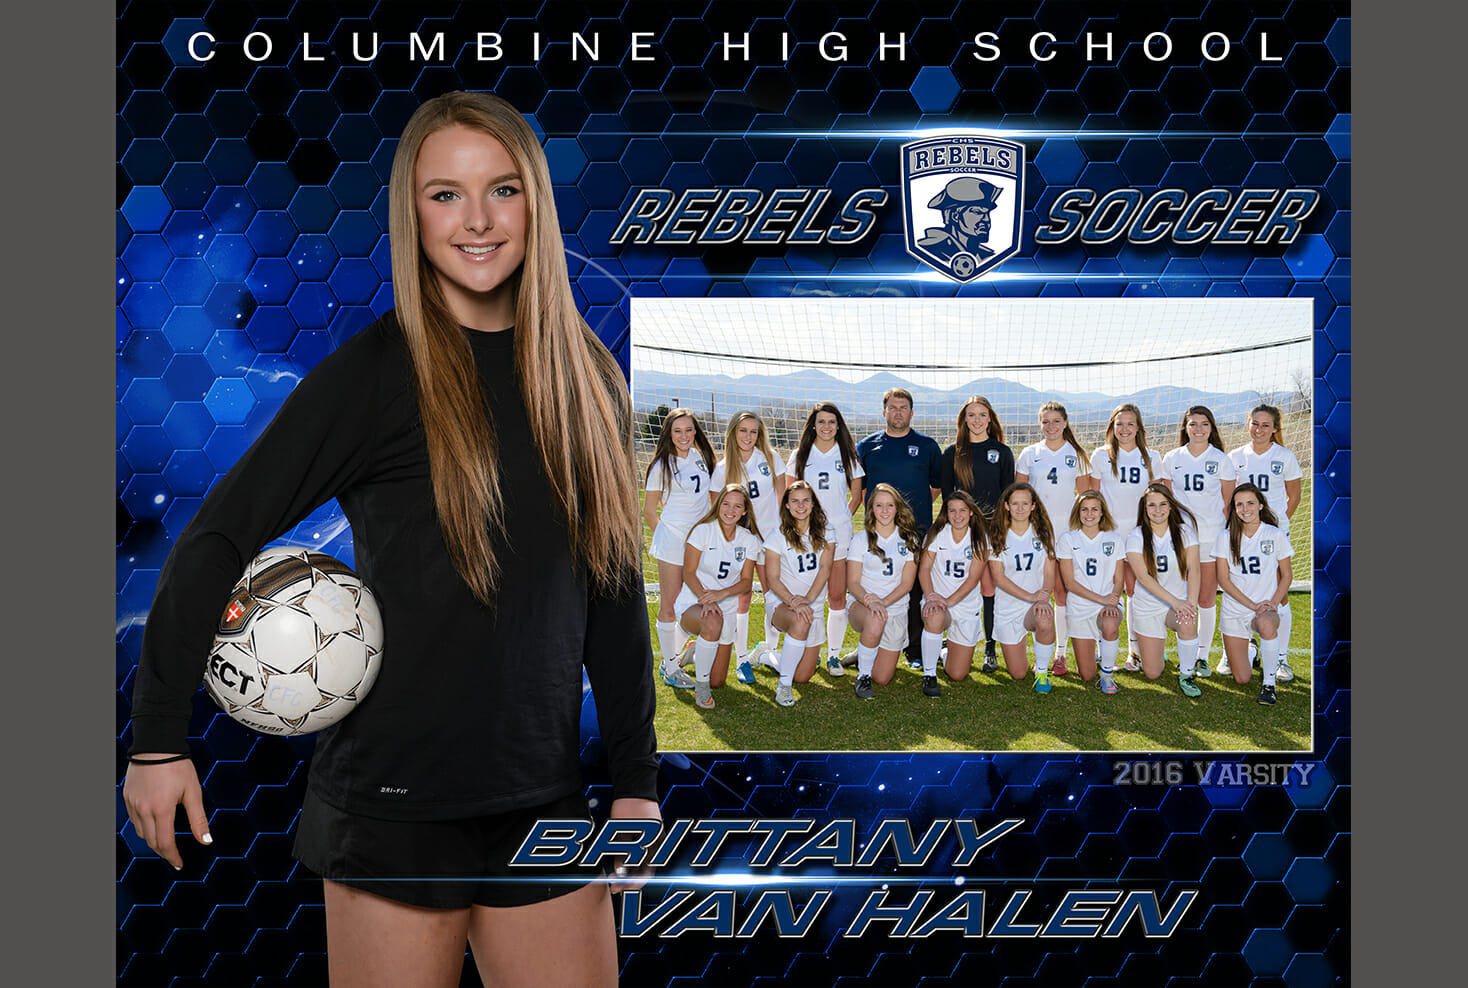 Columbine high school girls soccer memory mate